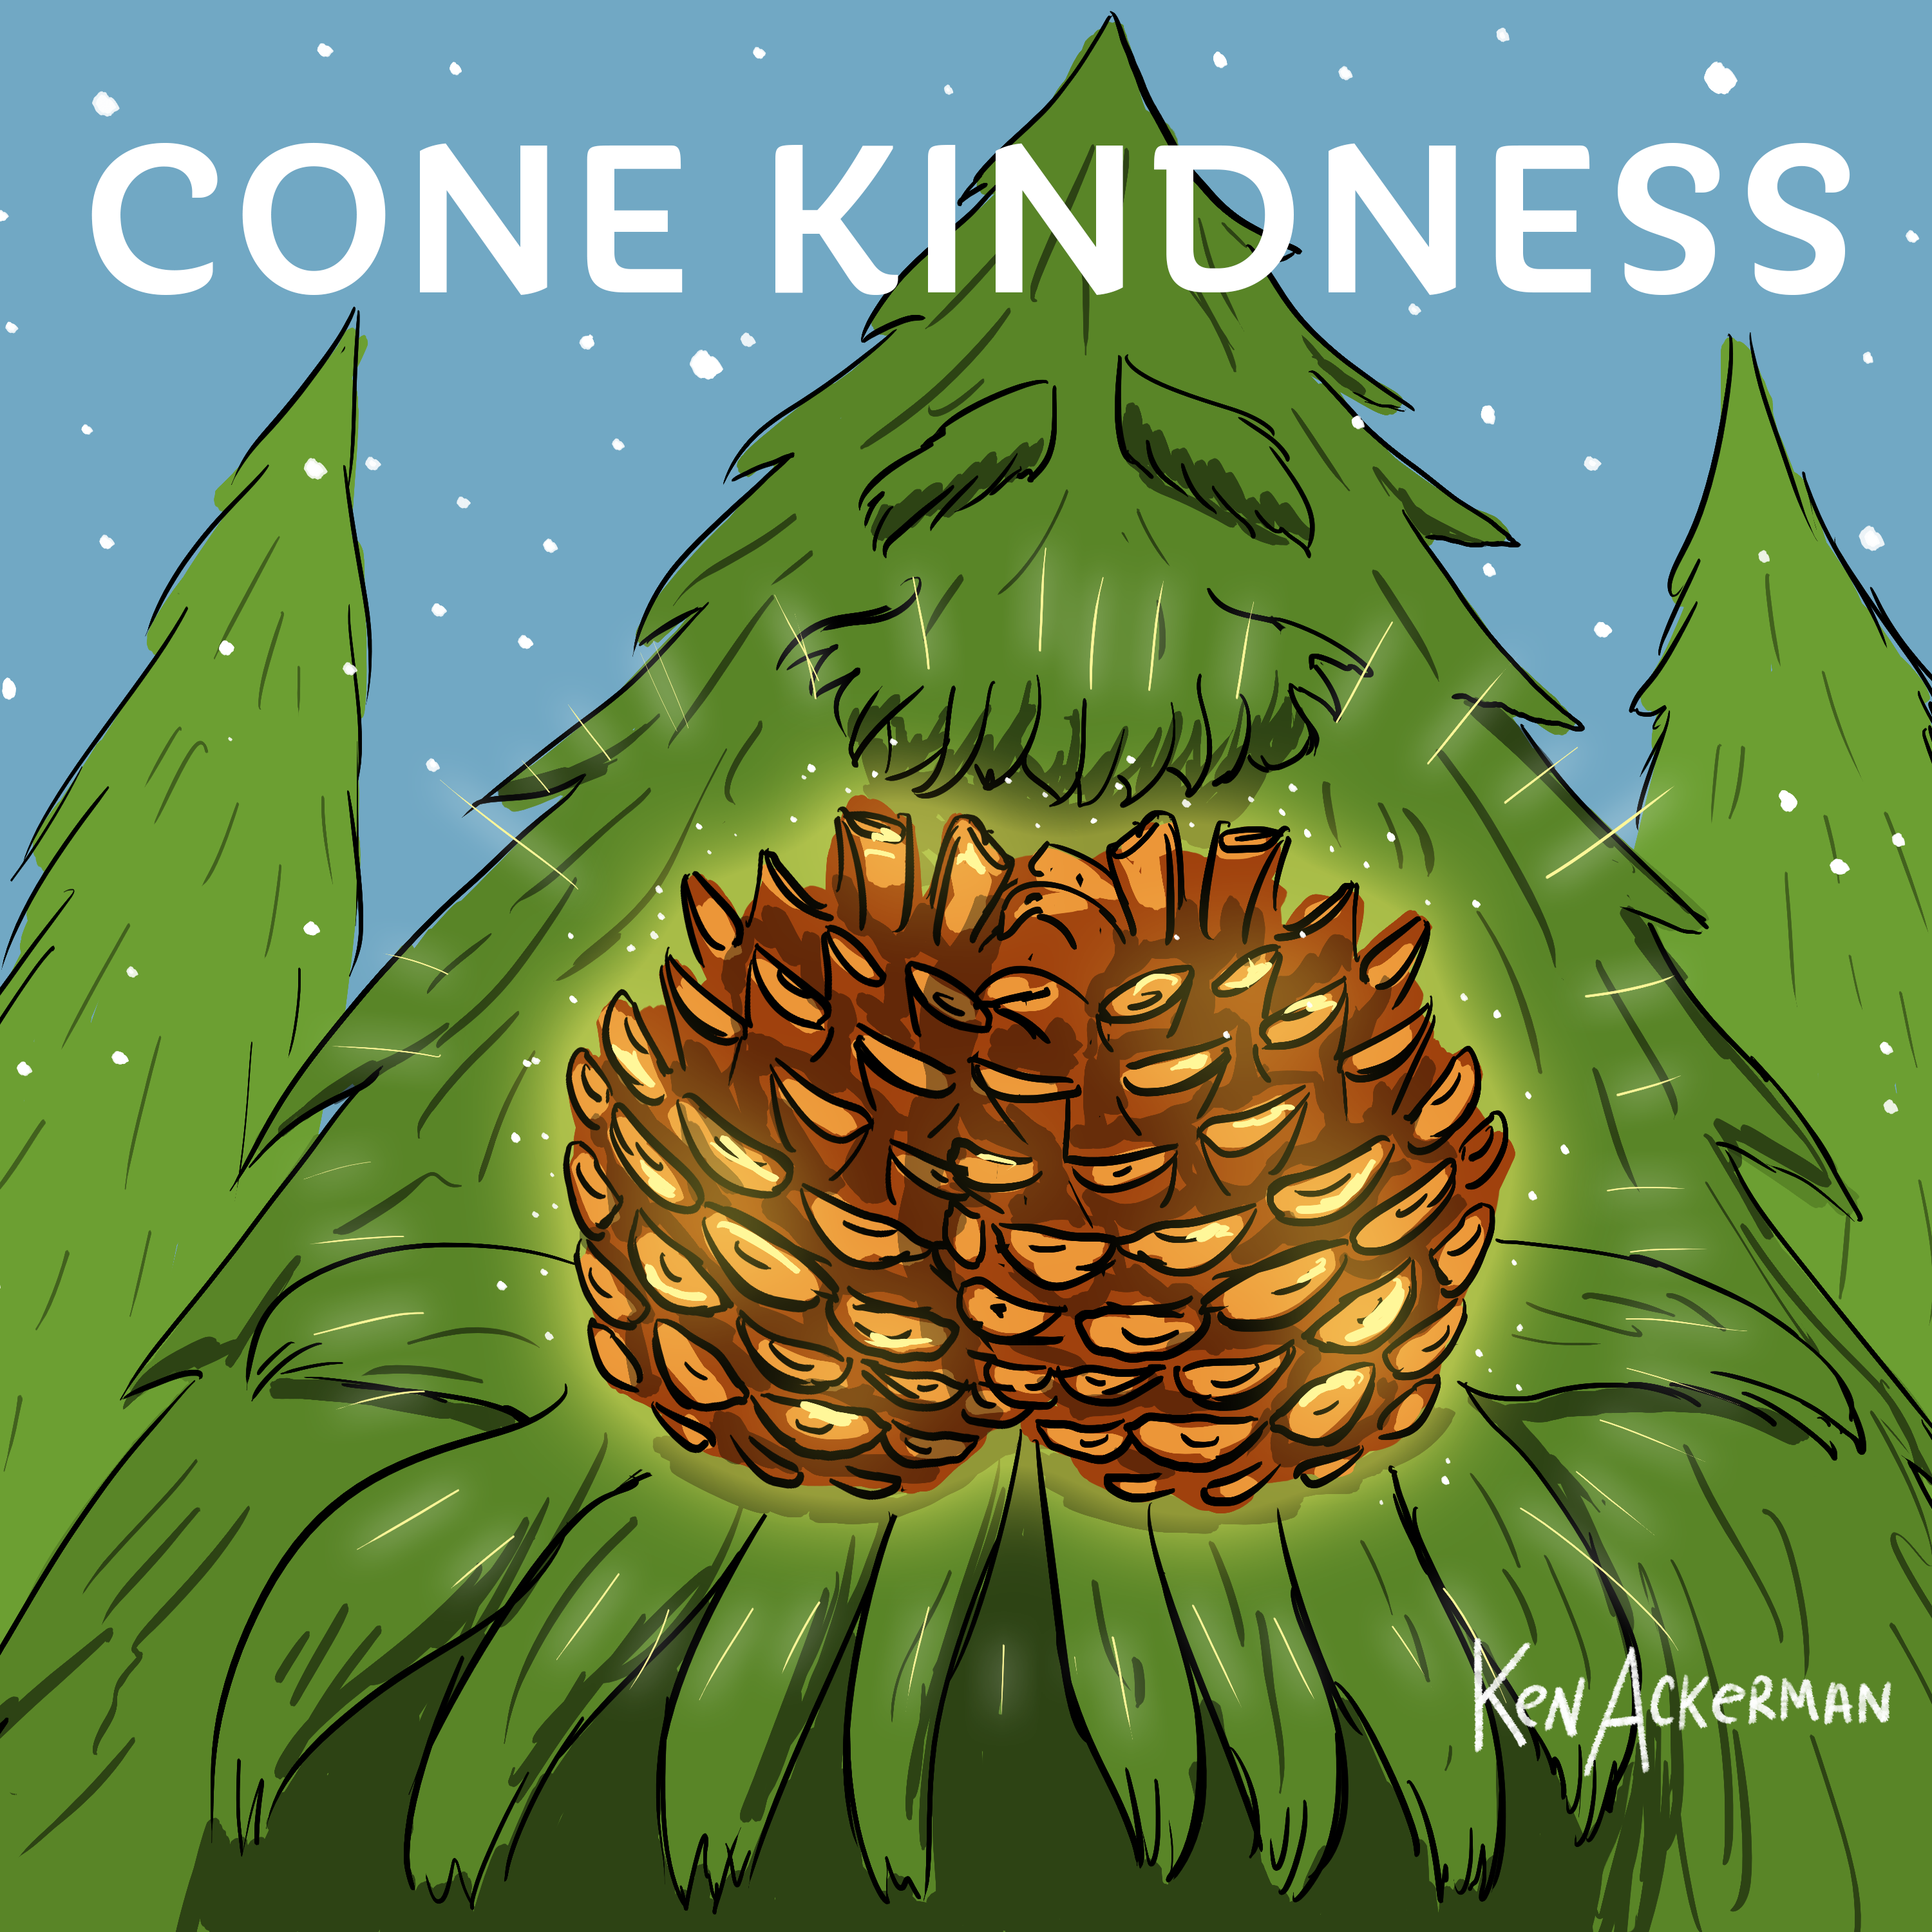 836 - Tribute Tree and Cones of Kindness